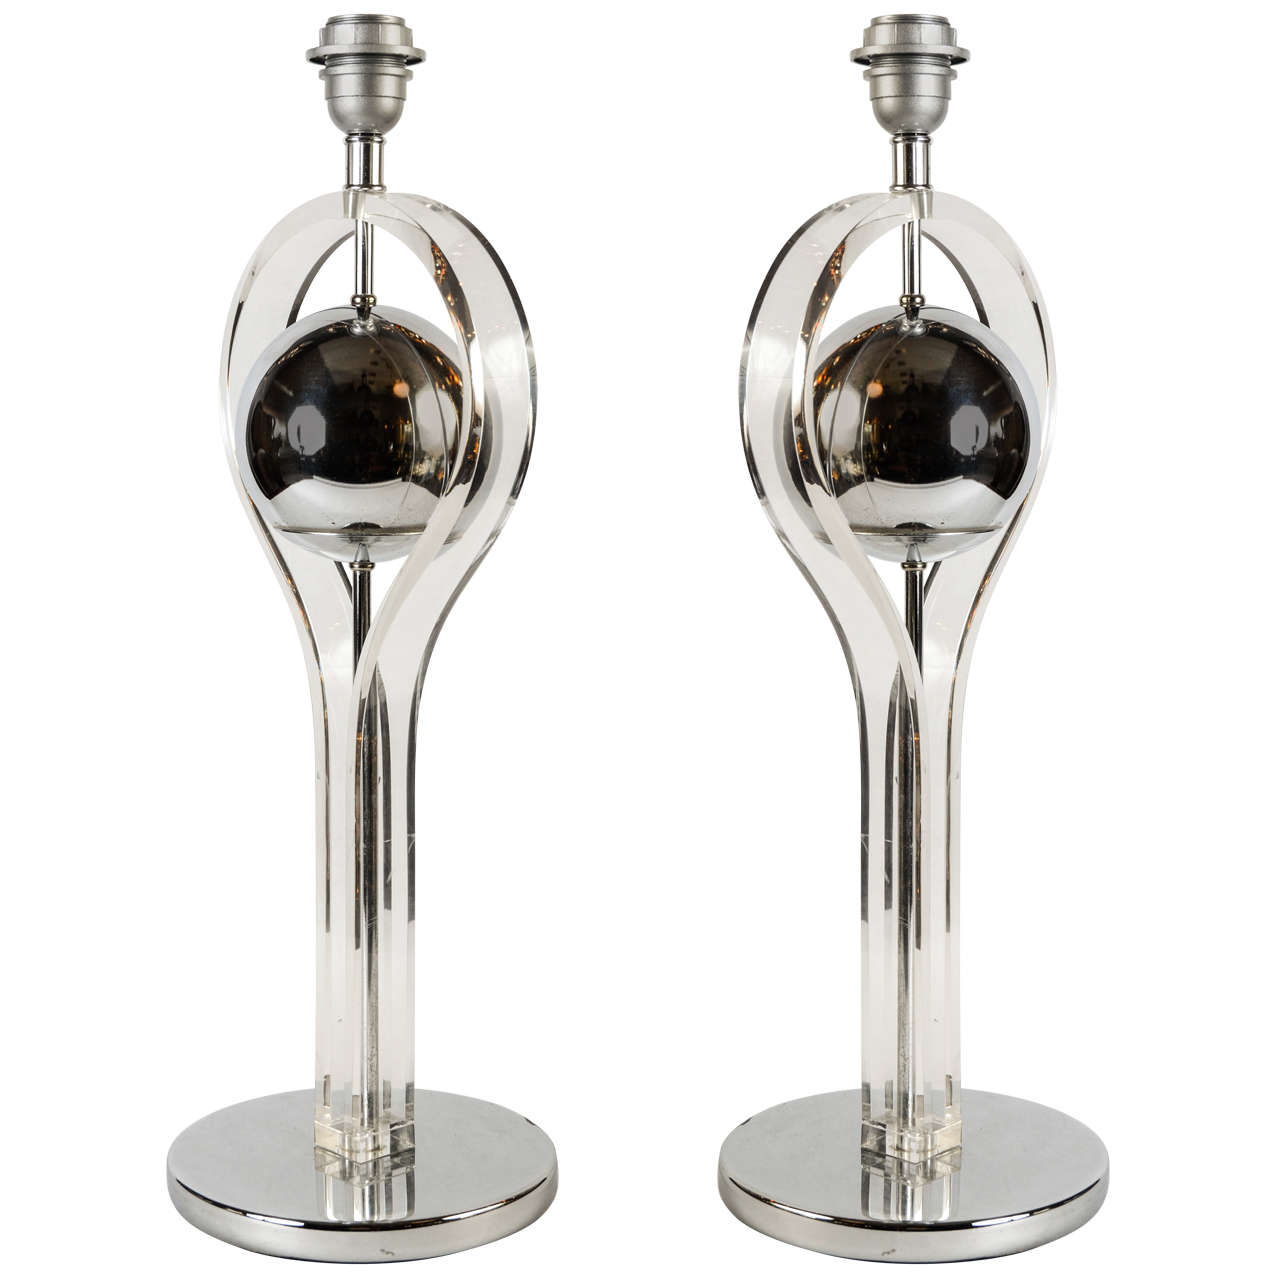 pair of 1970s space age table lamps for sale at 1stdibs. Black Bedroom Furniture Sets. Home Design Ideas